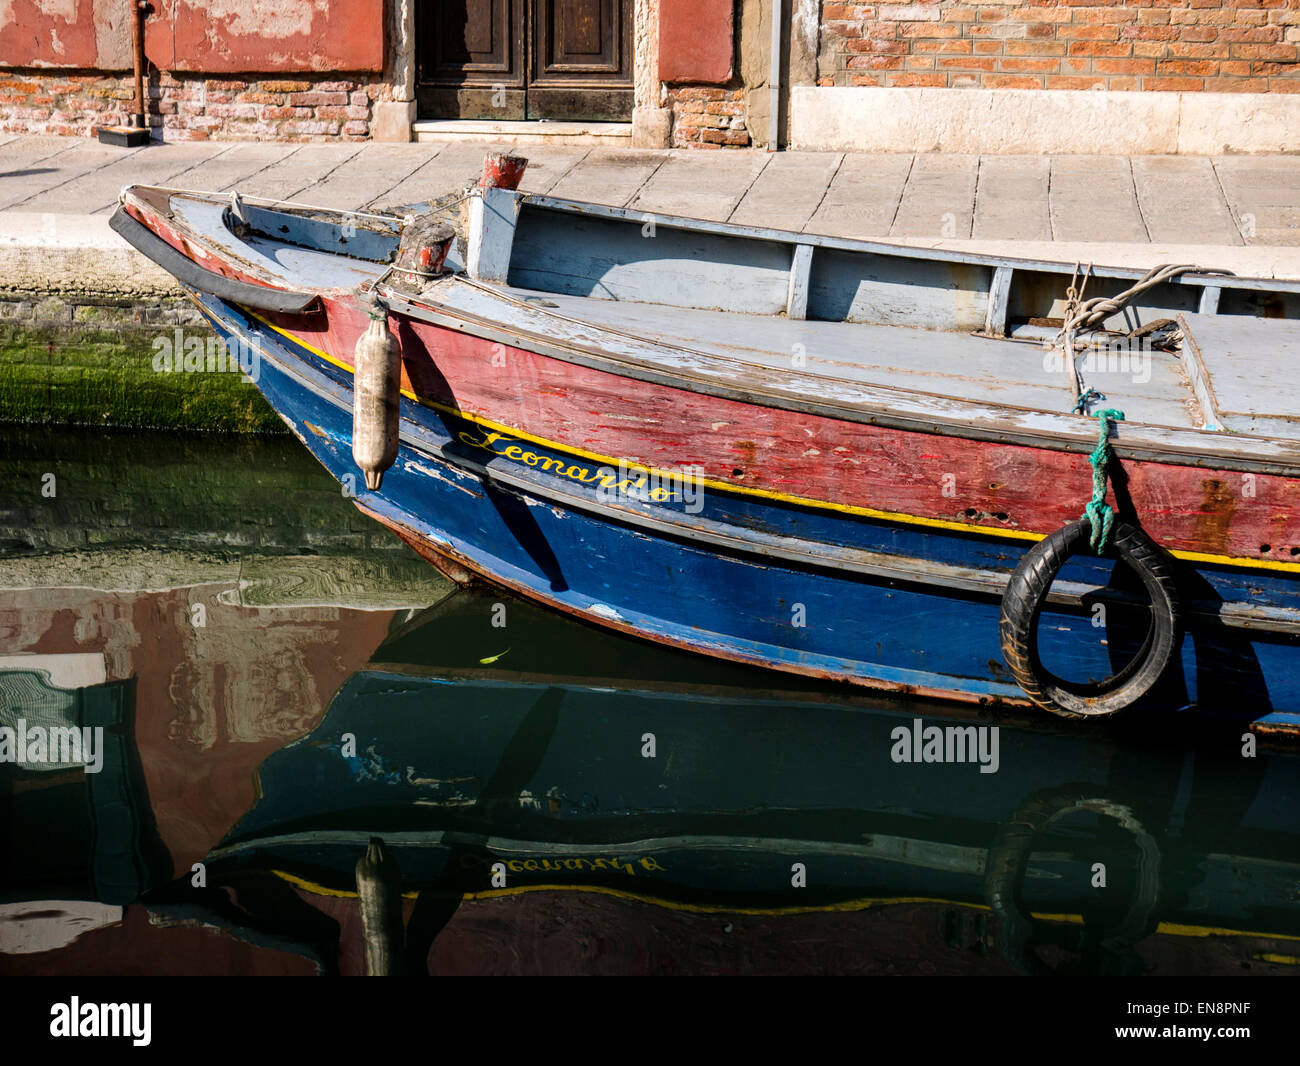 Venice, Italy, the City of Canals - Stock Image